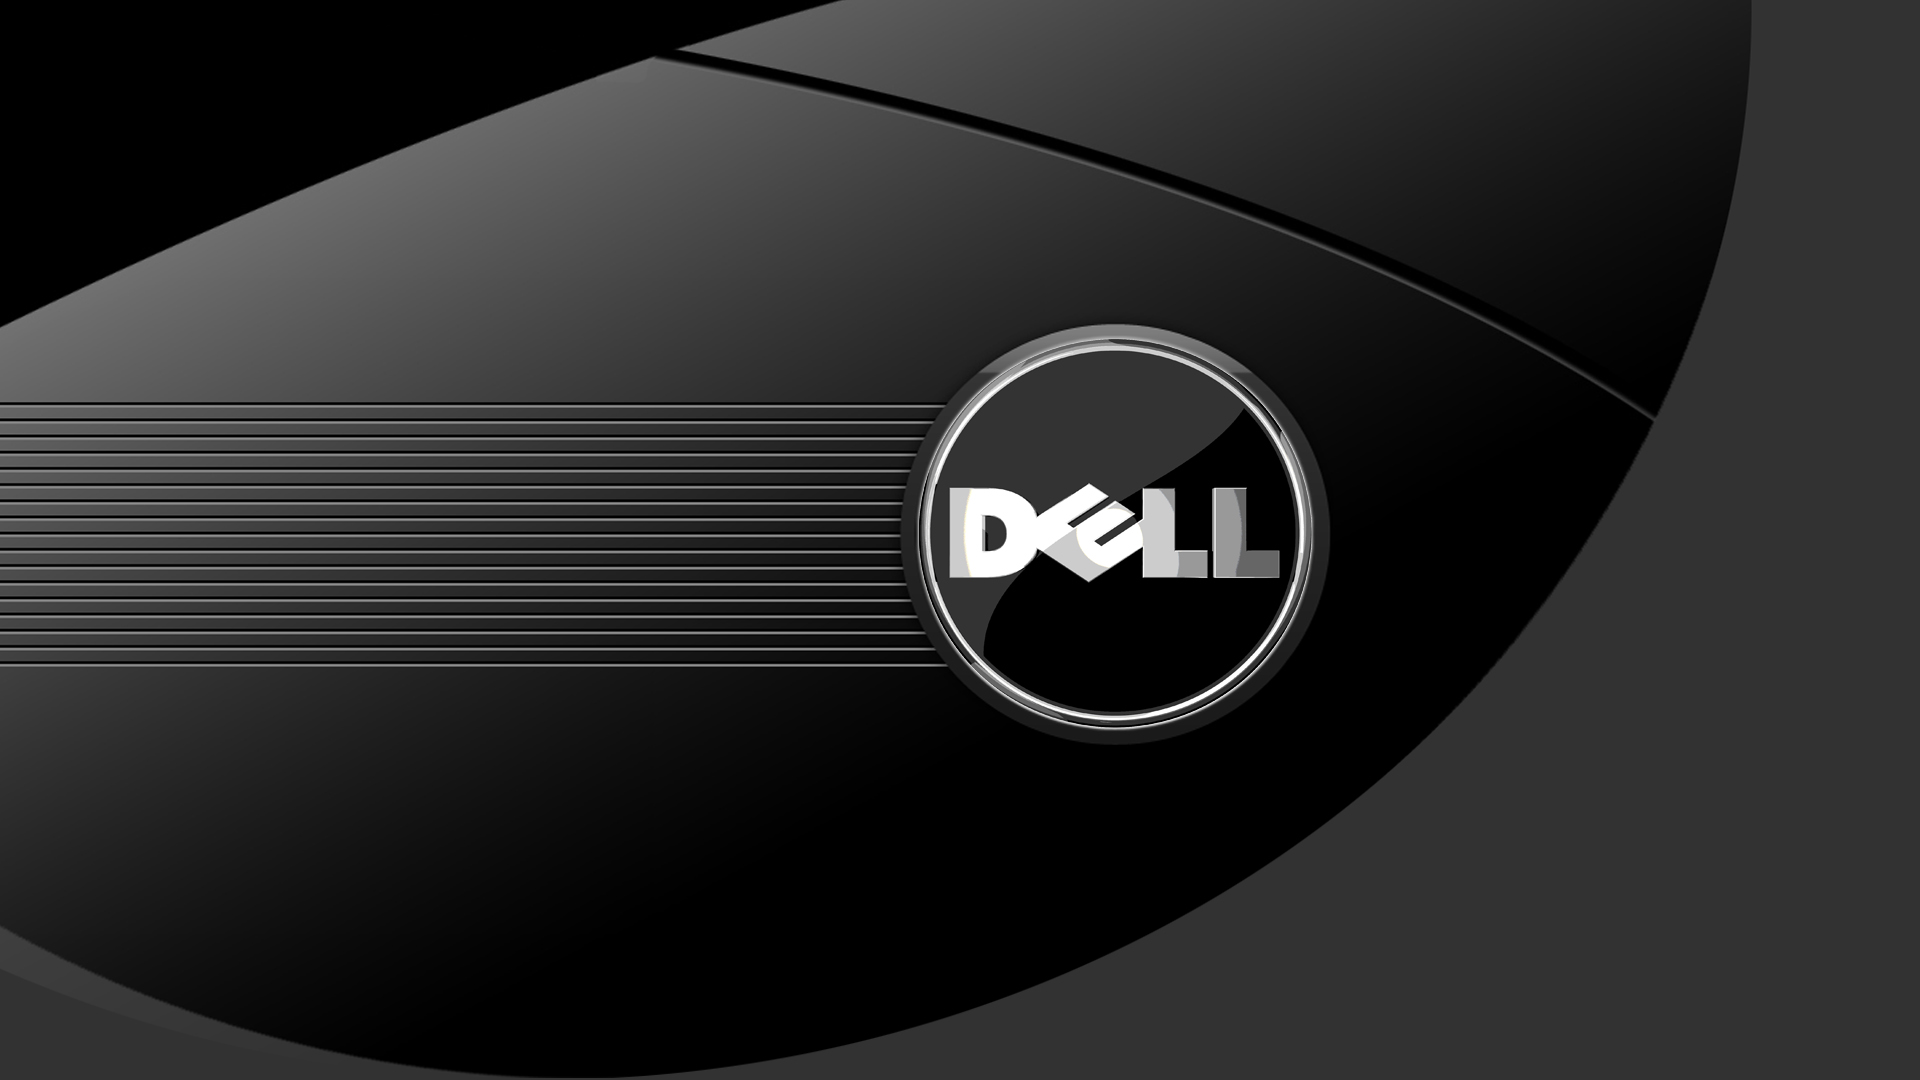 HD Dell Backgrounds Dell Wallpaper Images For Windows 1920x1080